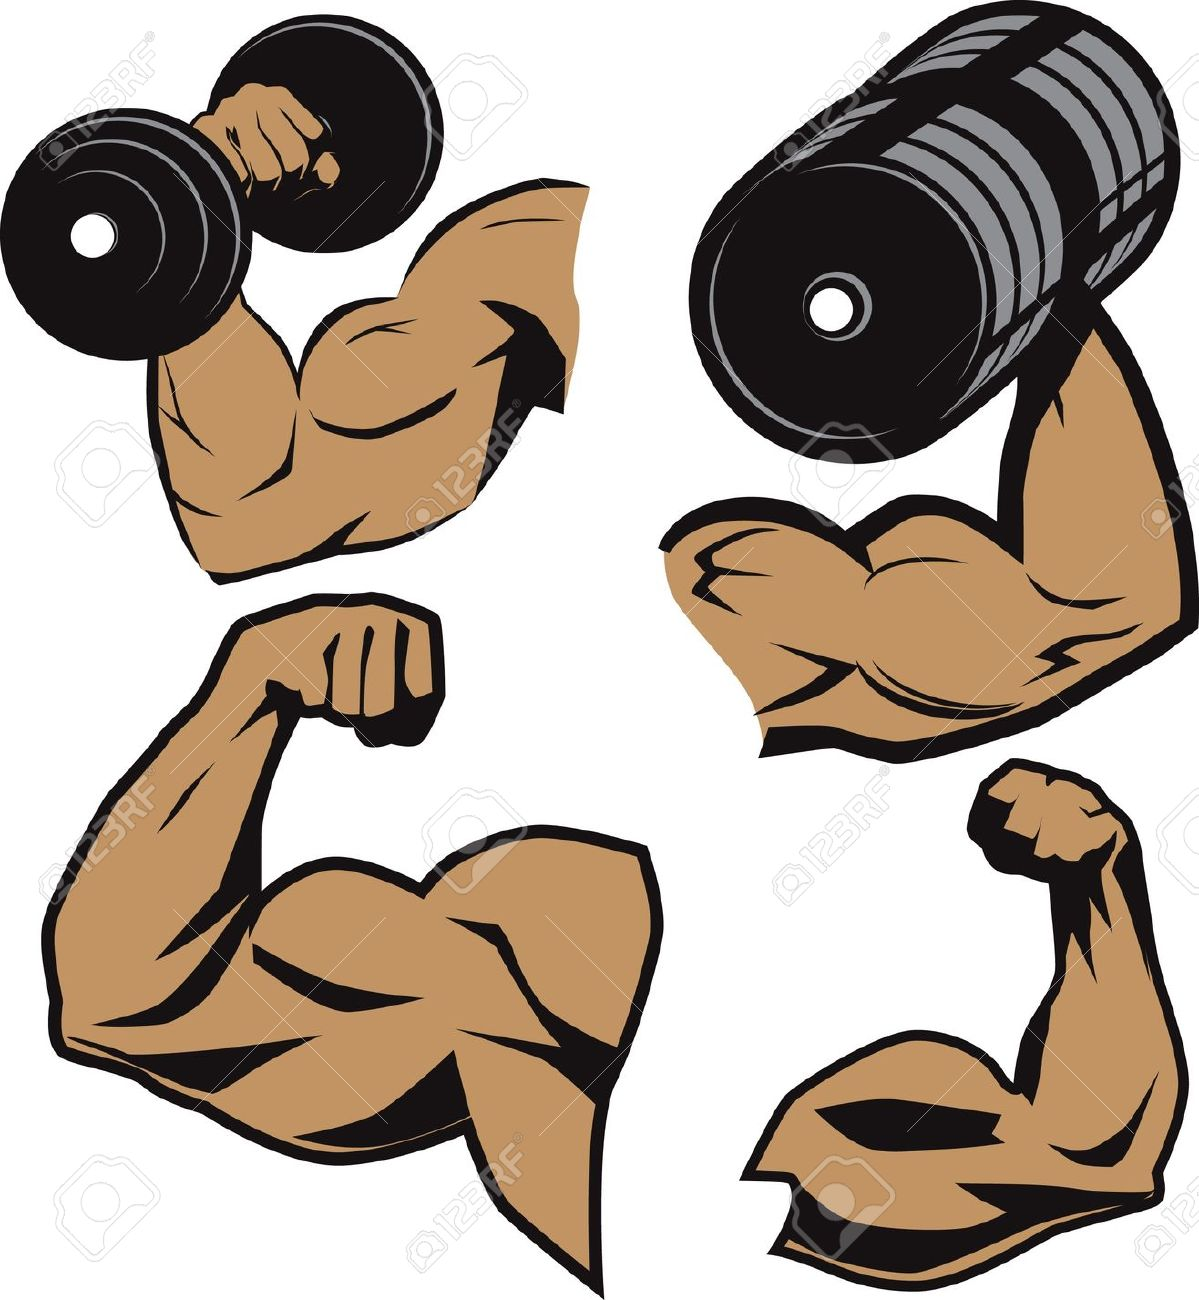 lift arm clipart clipground woman lifting weights clipart Cartoon Girl Lifting Weights